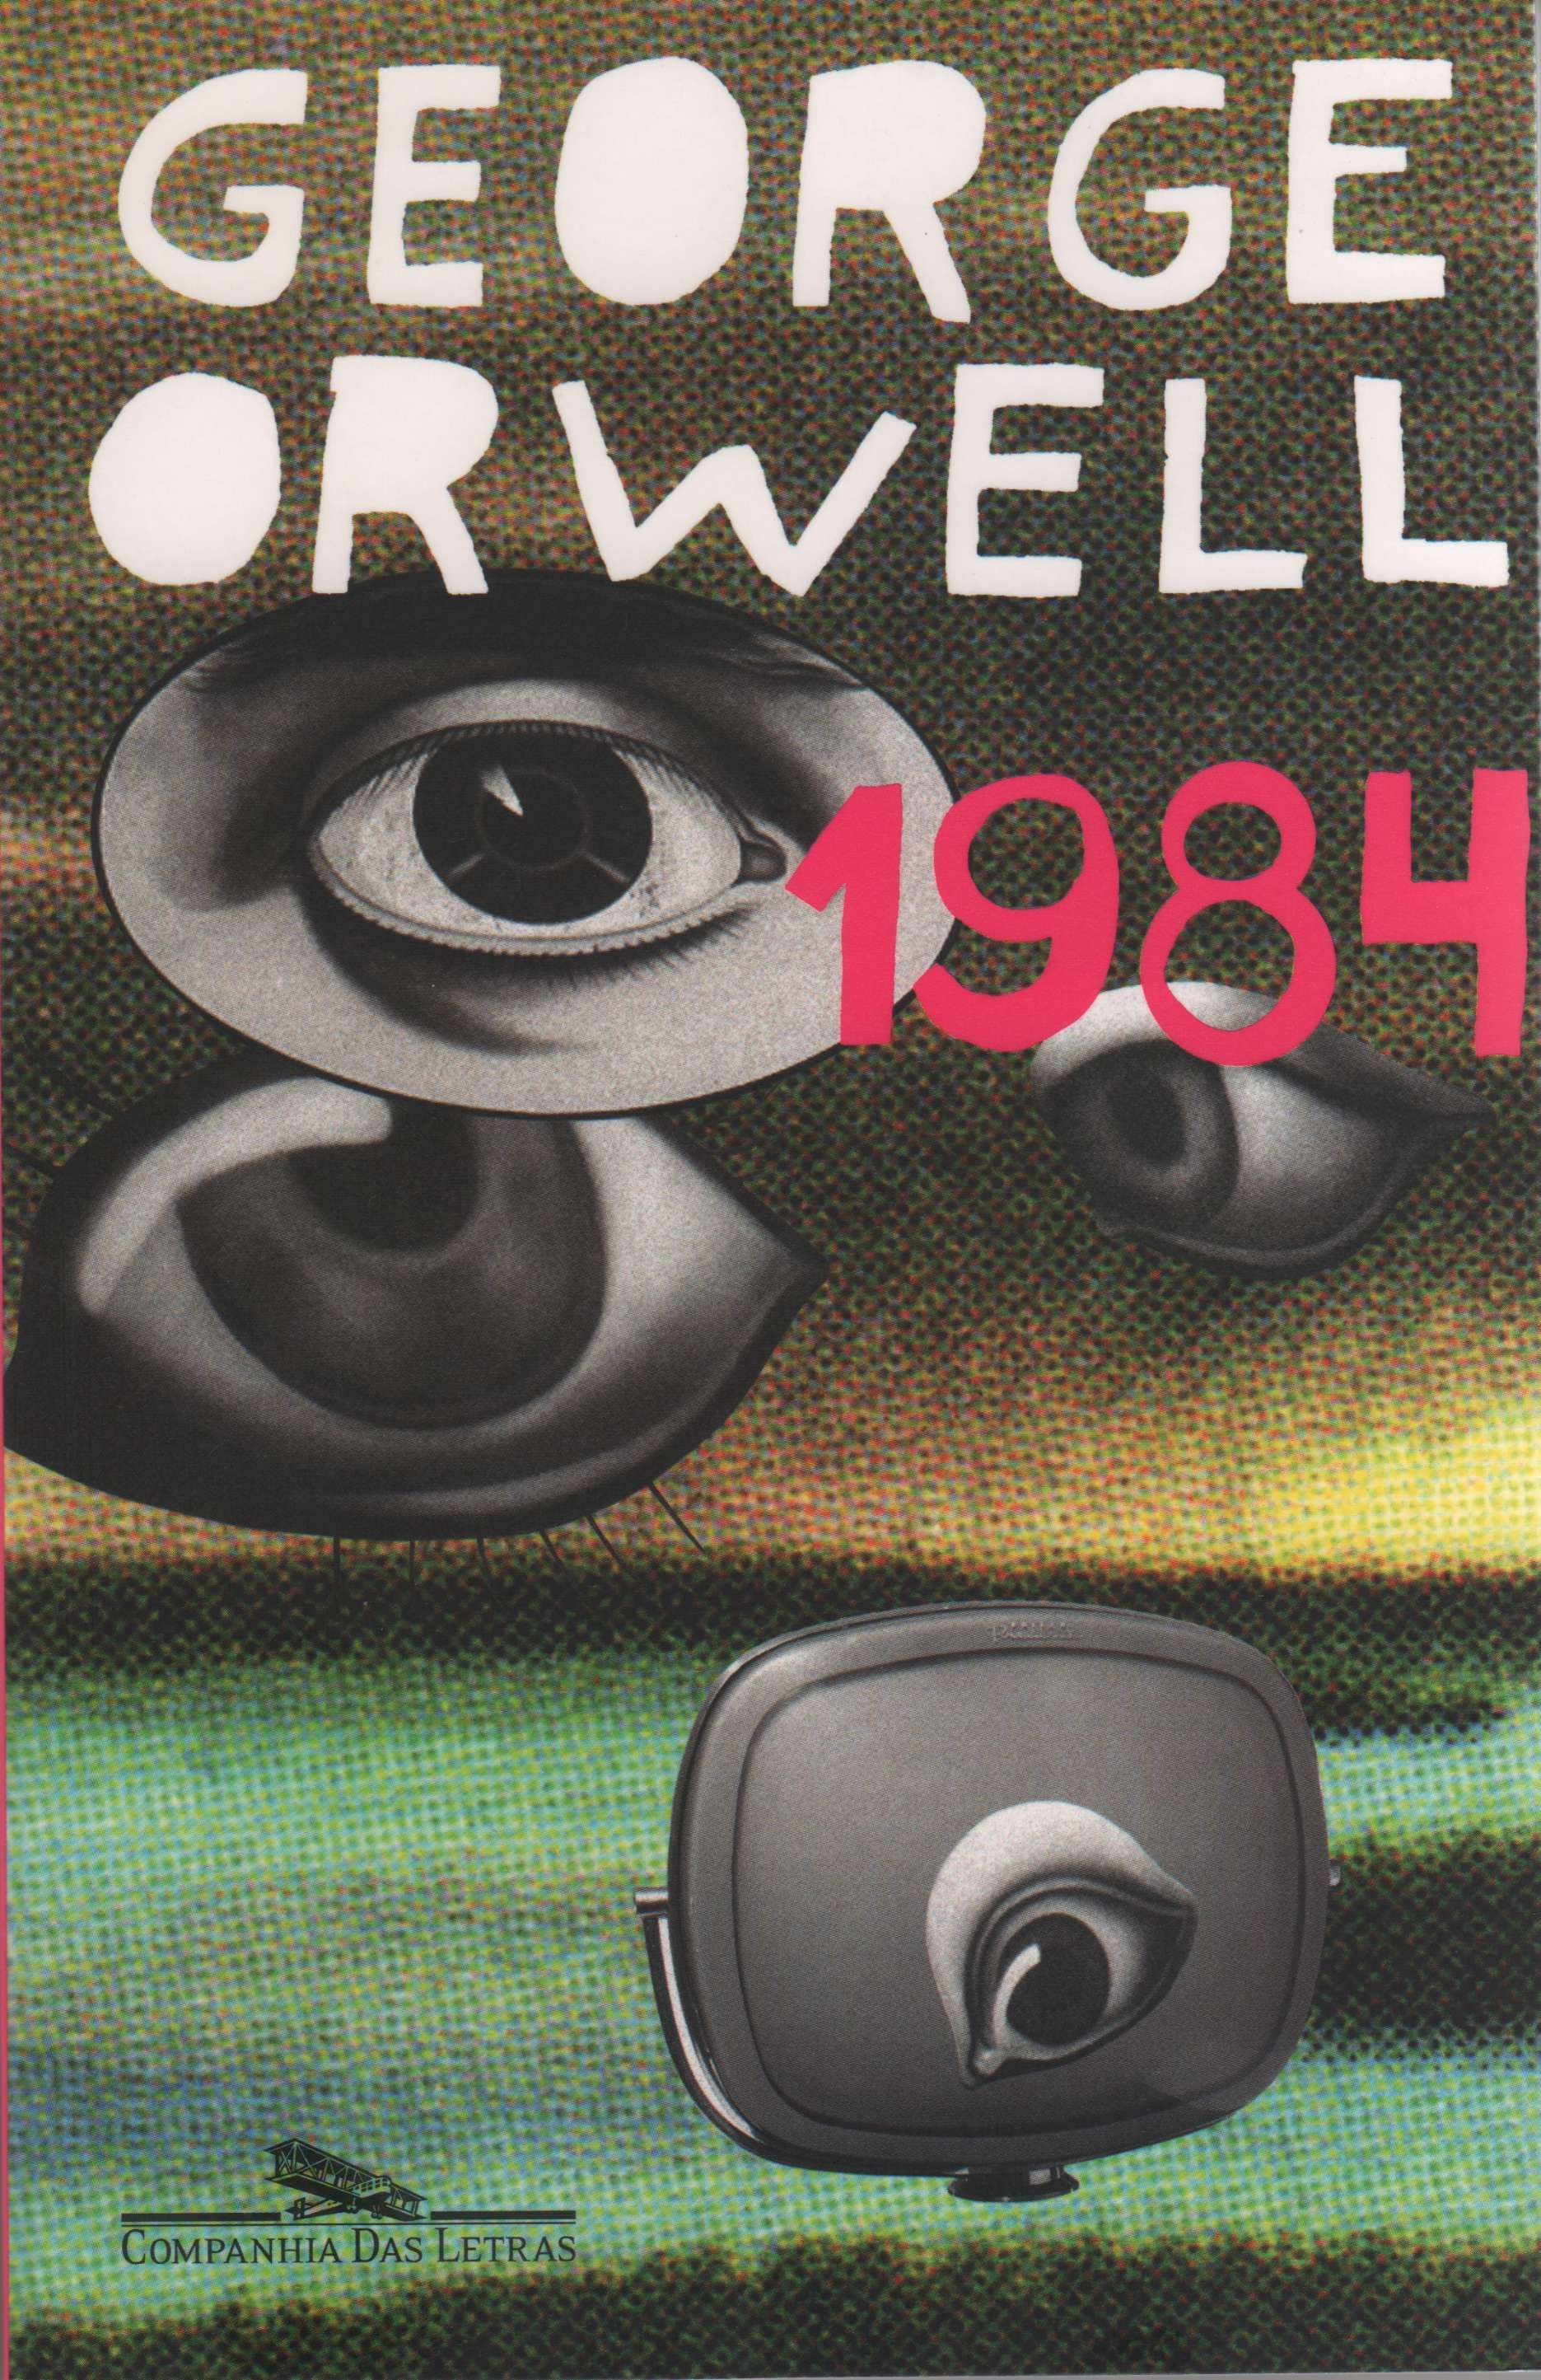 1984 by george orwell books books books pinterest book book 1984 by george orwell fandeluxe Choice Image